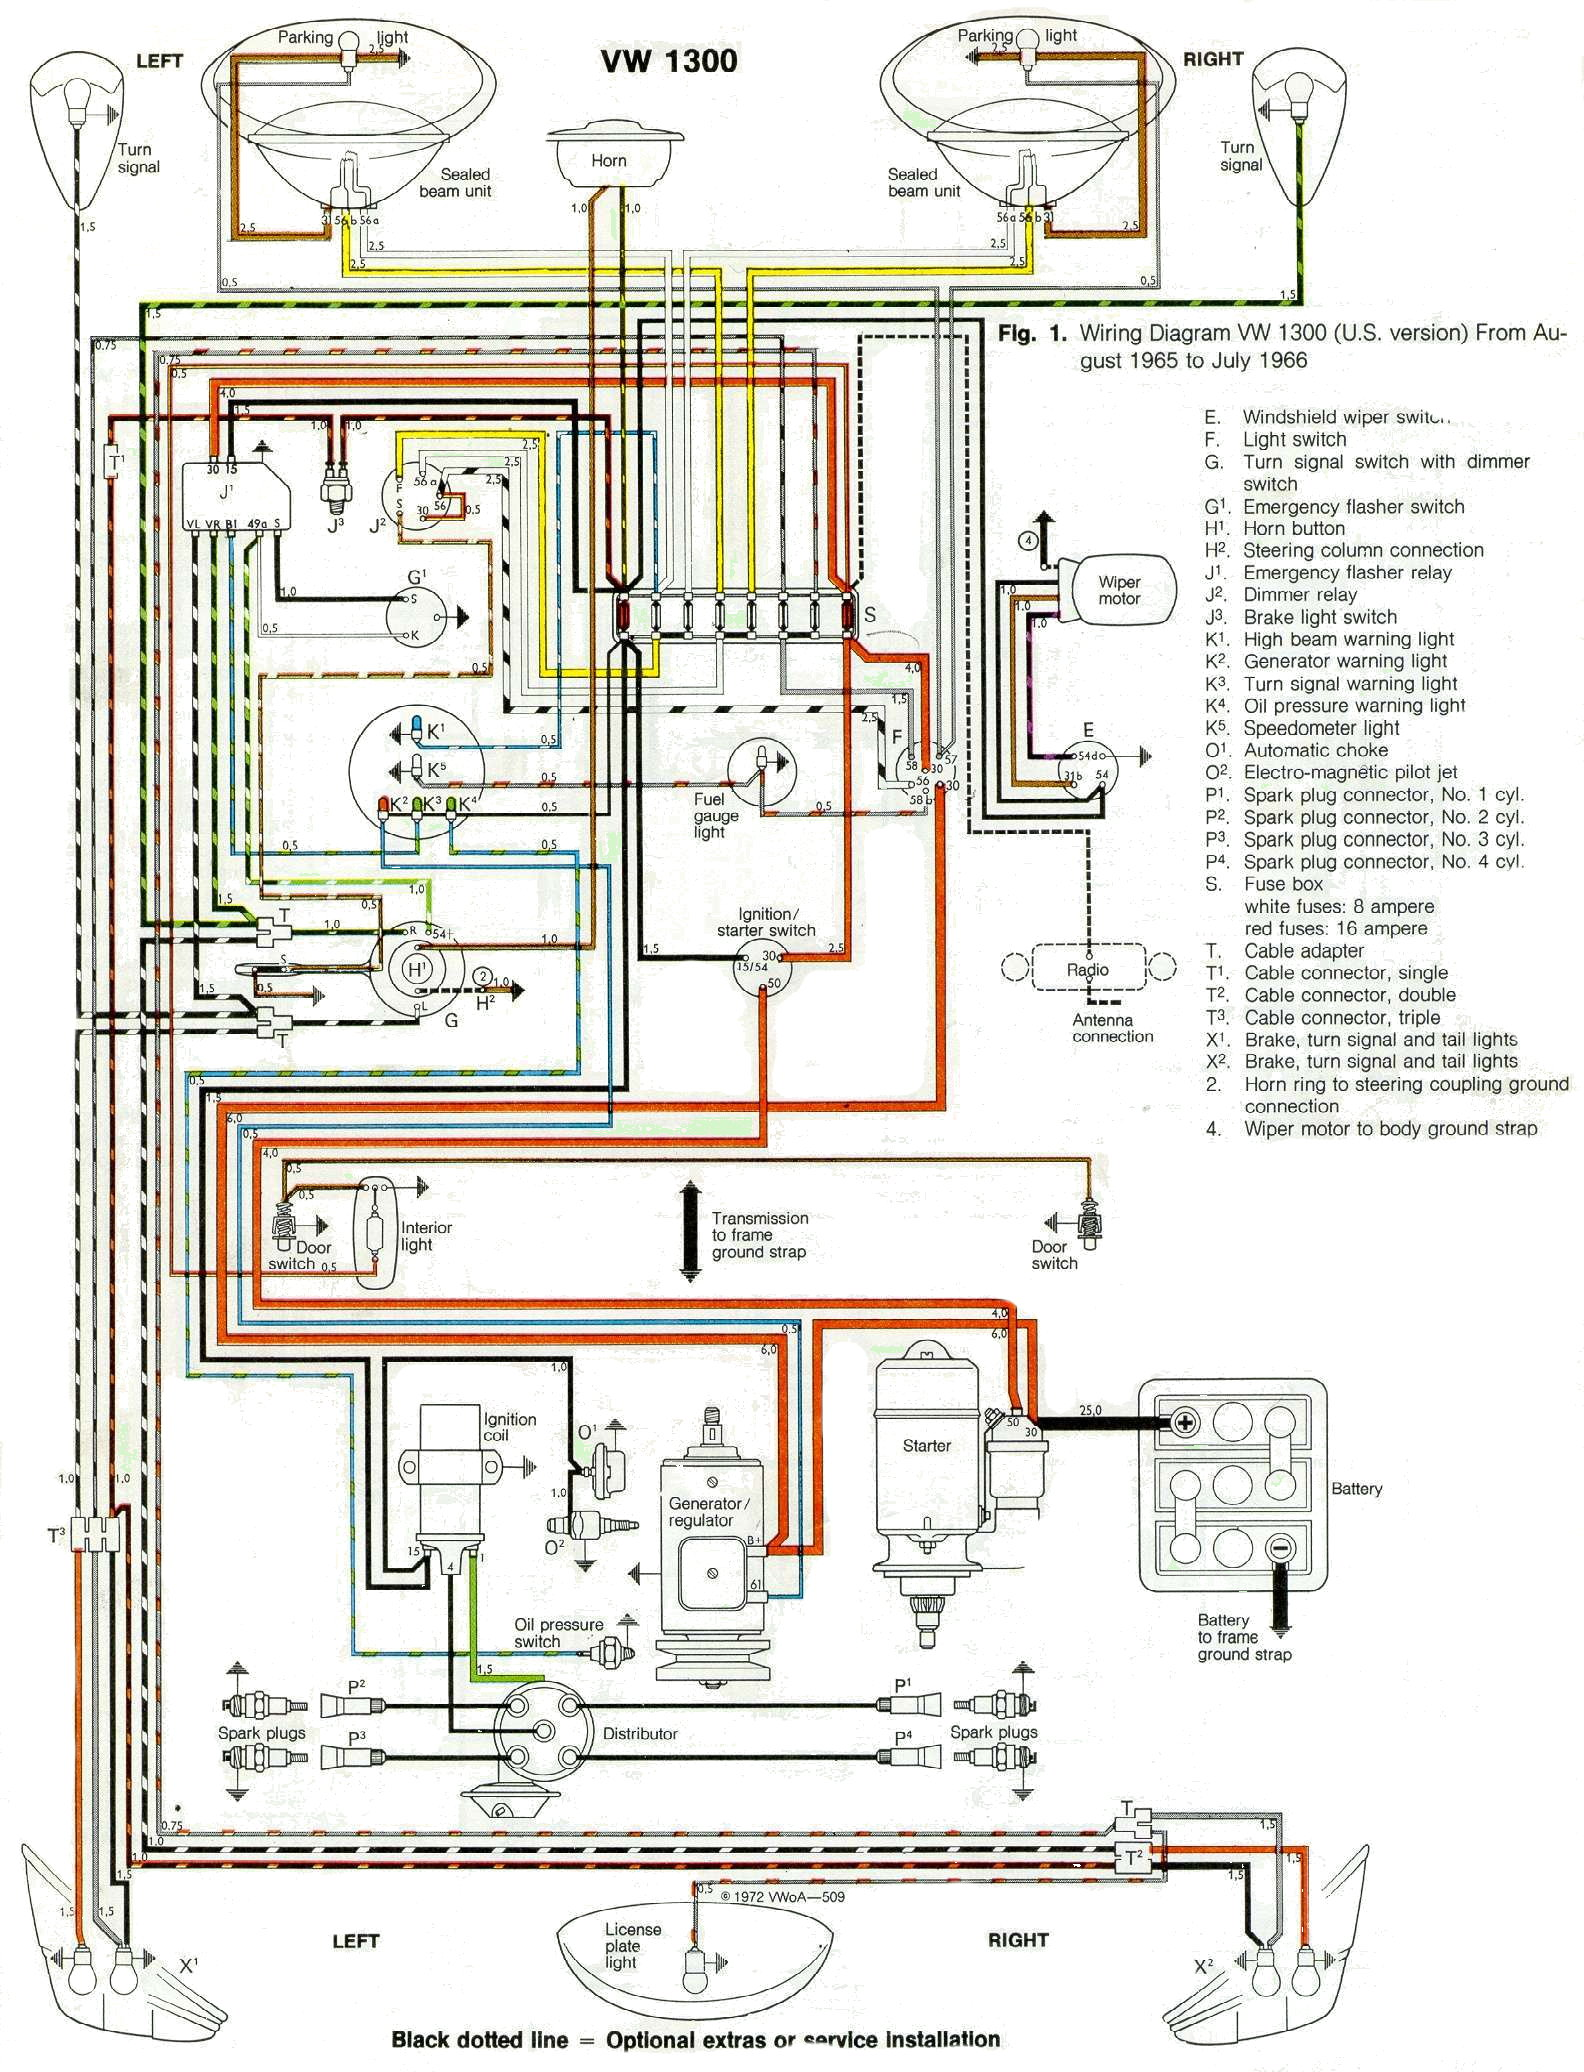 1966 Wiring 1966 wiring diagram Toyota Corolla Wiring Harness Diagram at cos-gaming.co